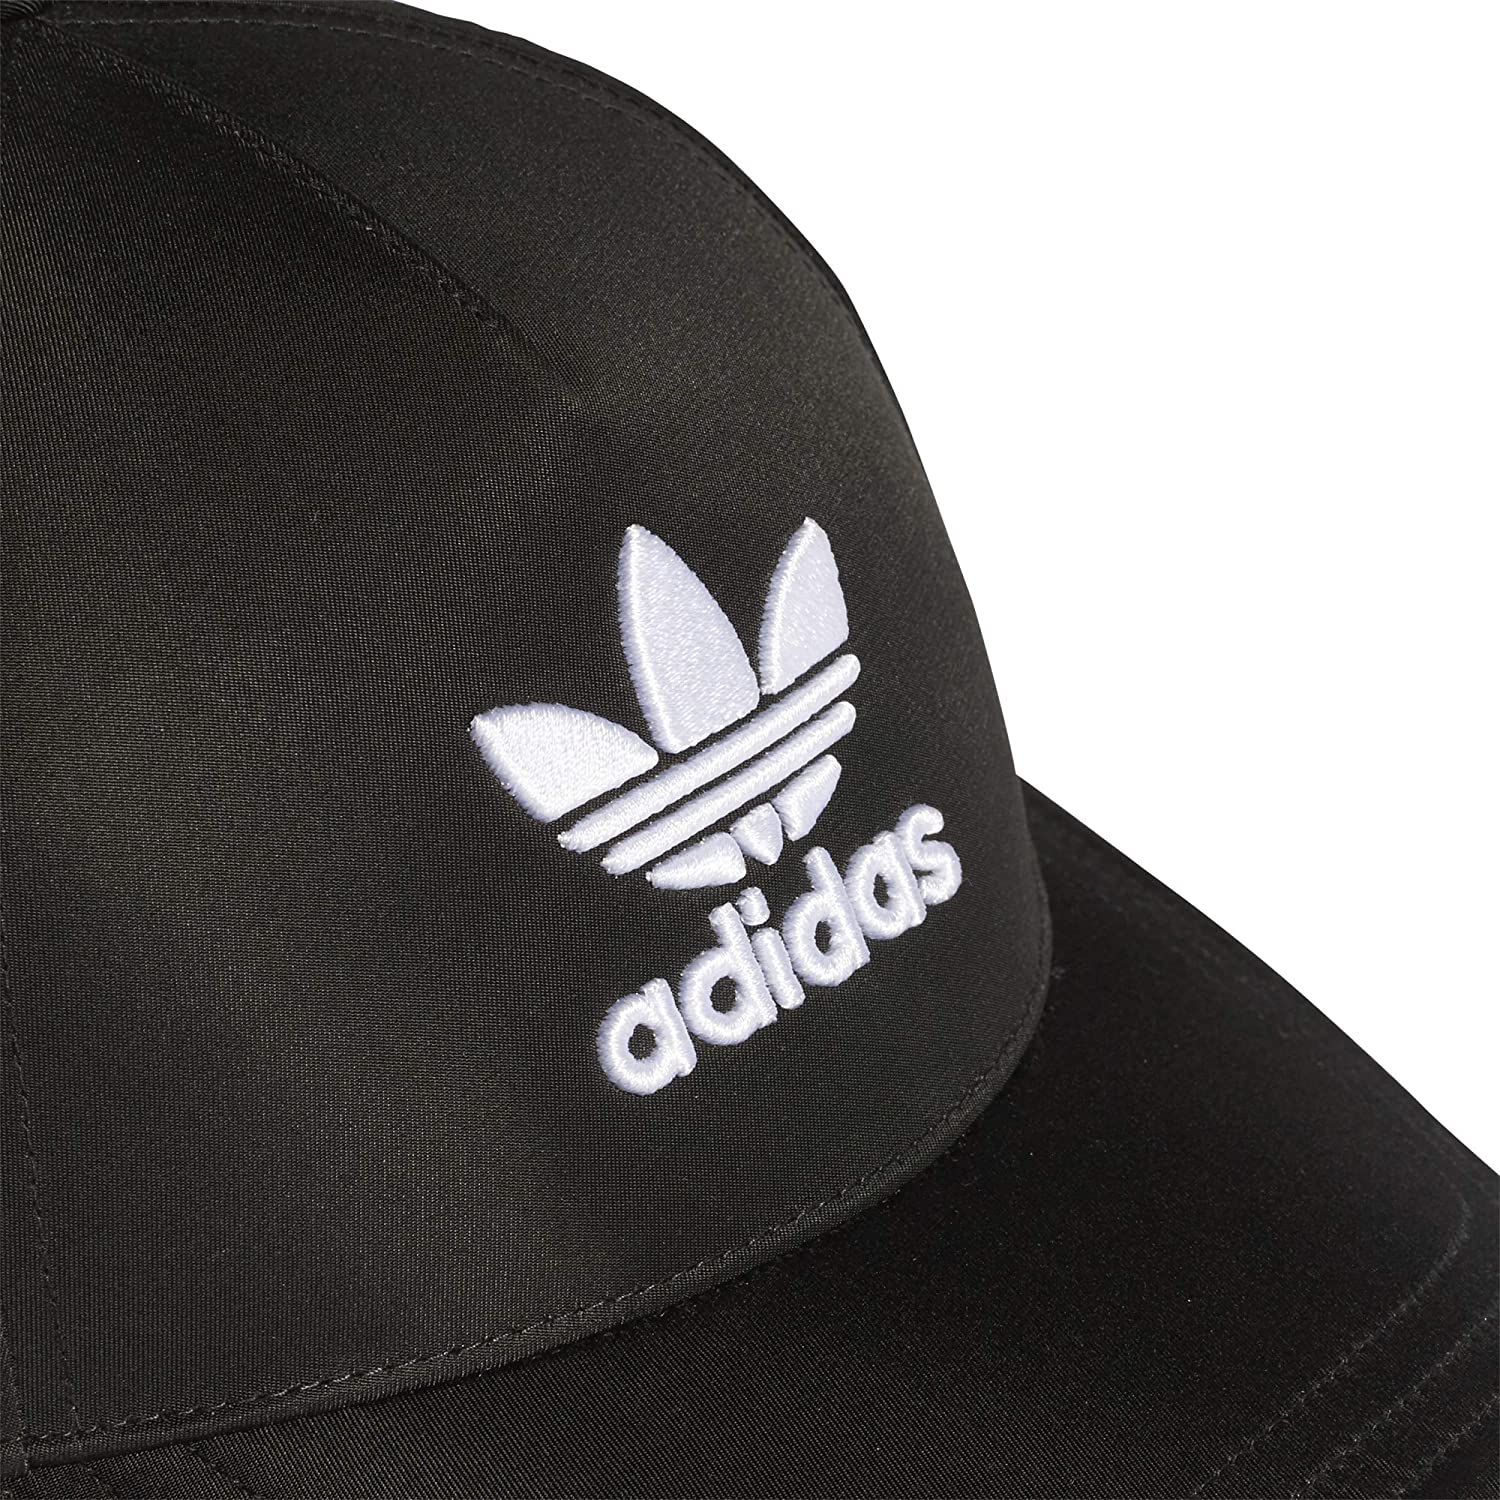 Casquette femme adidas: Amazon.co.uk: Car & Motorbike